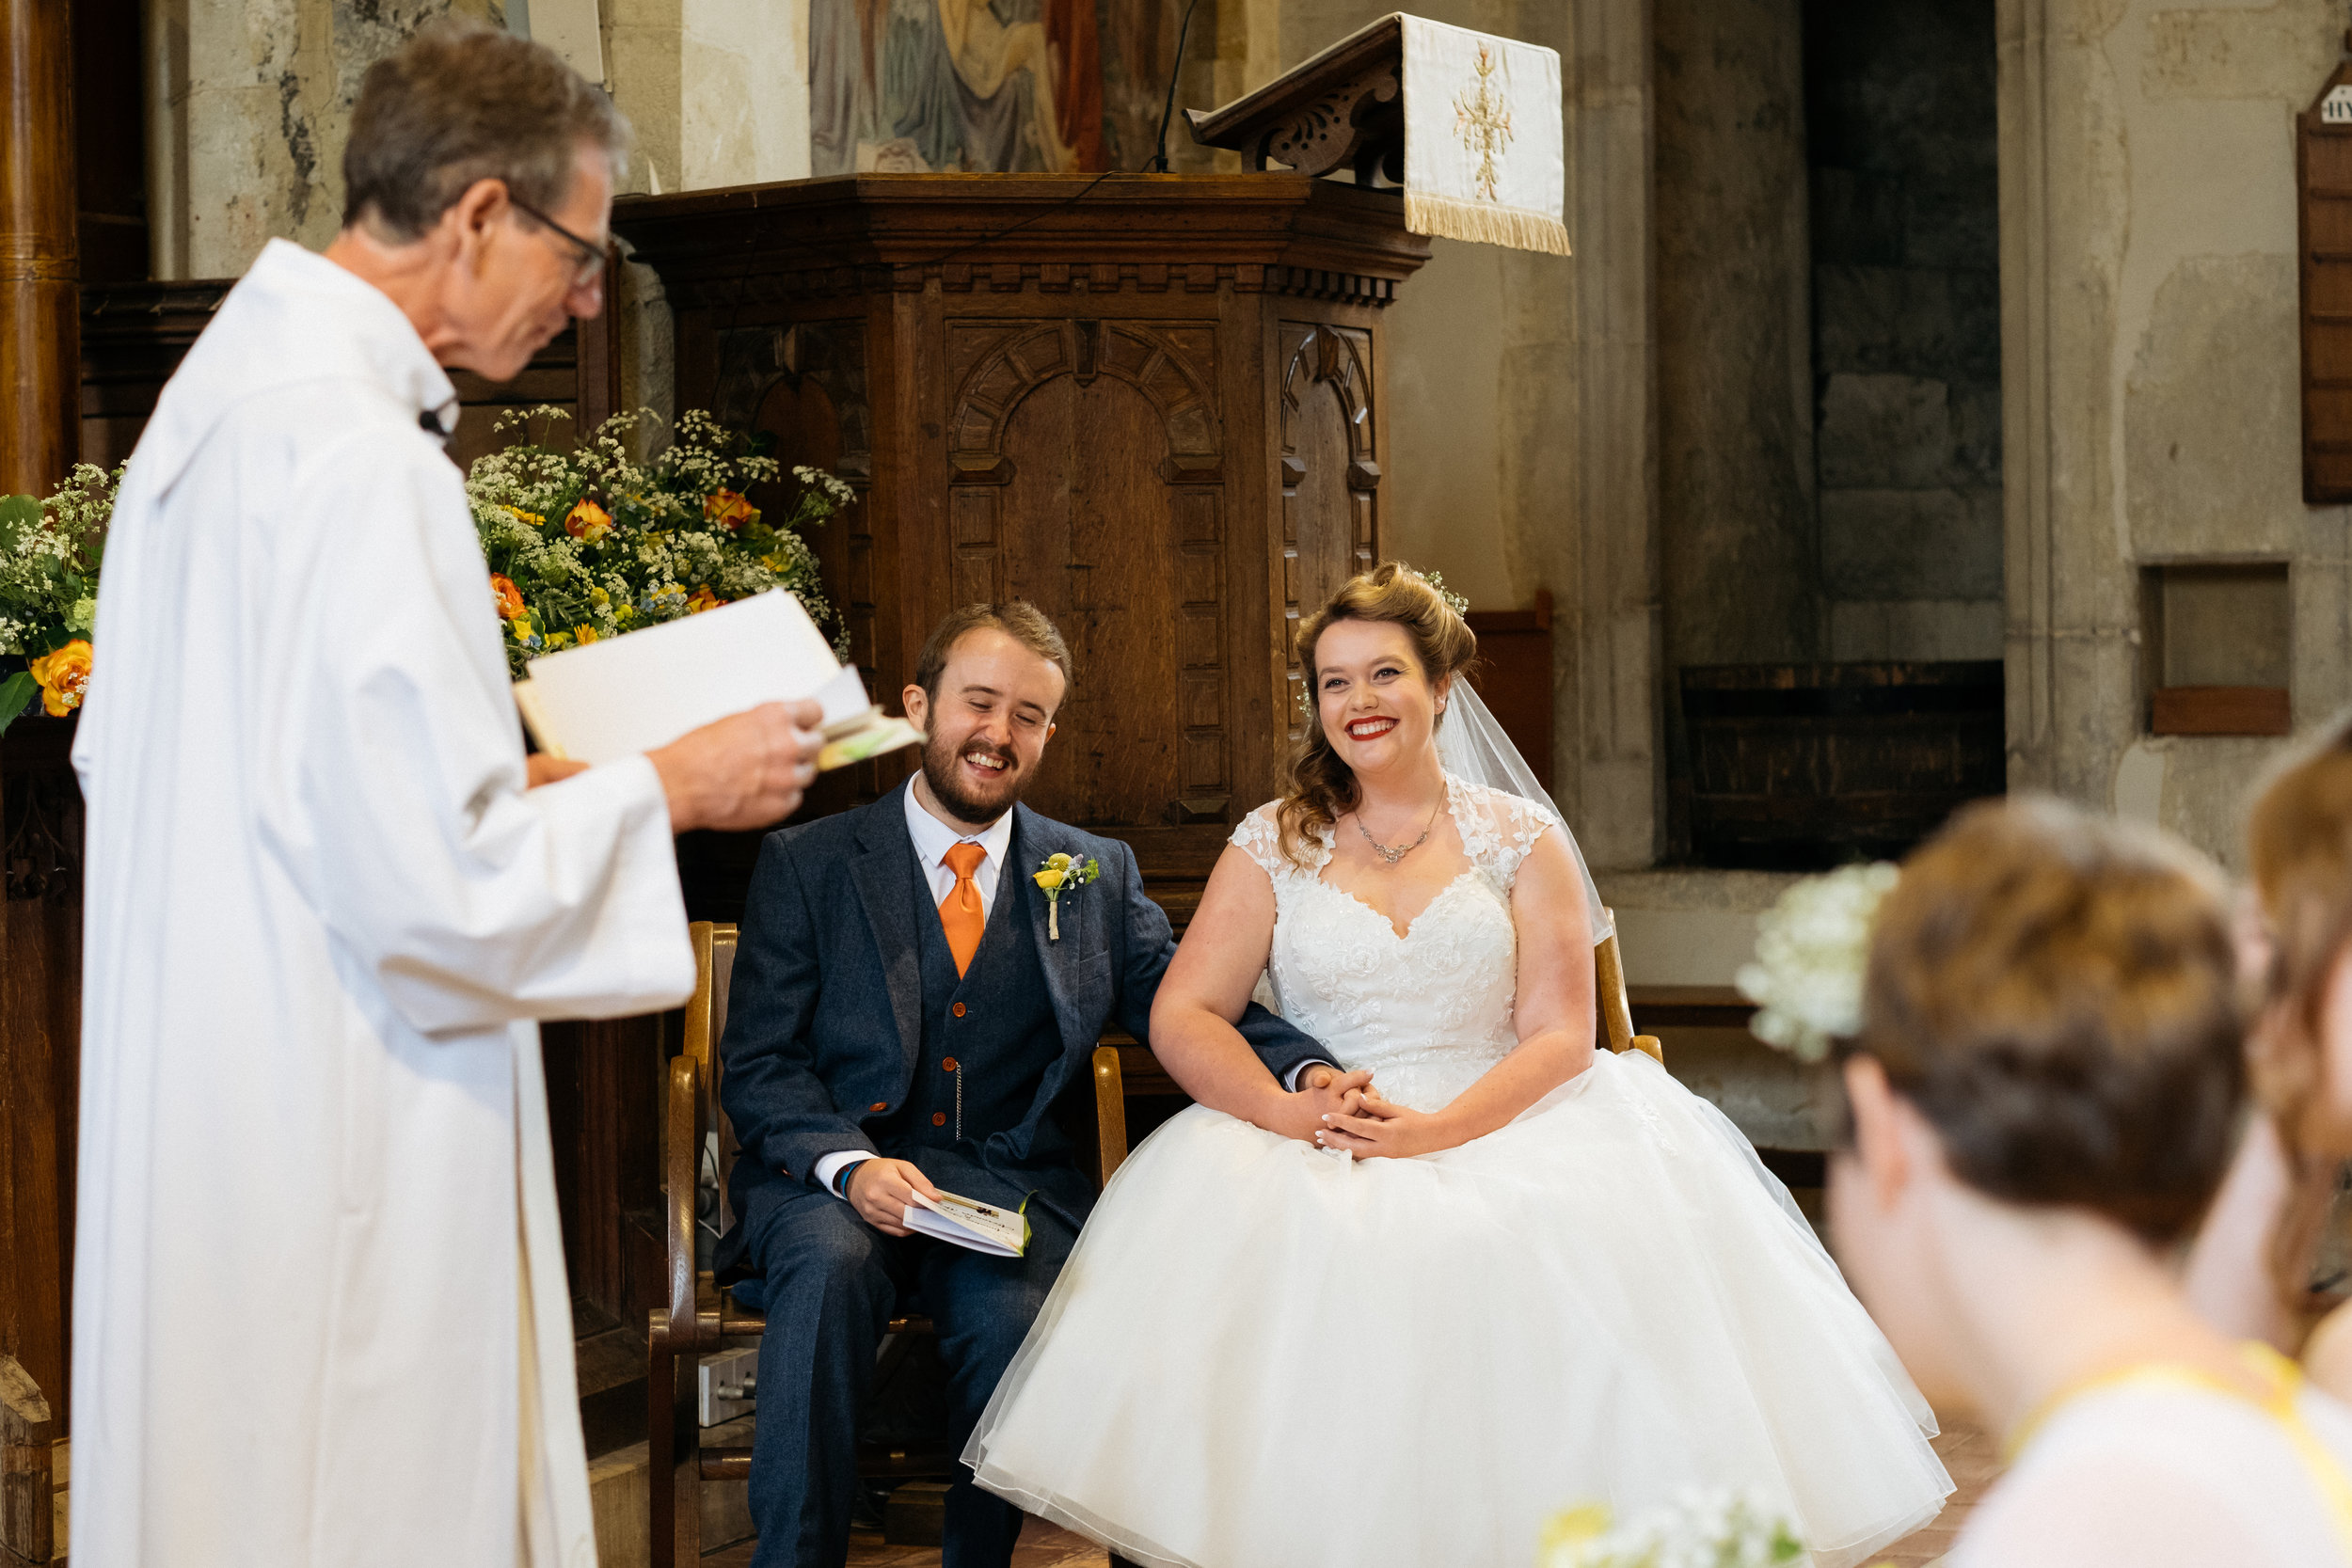 Bride and groom laughing in church